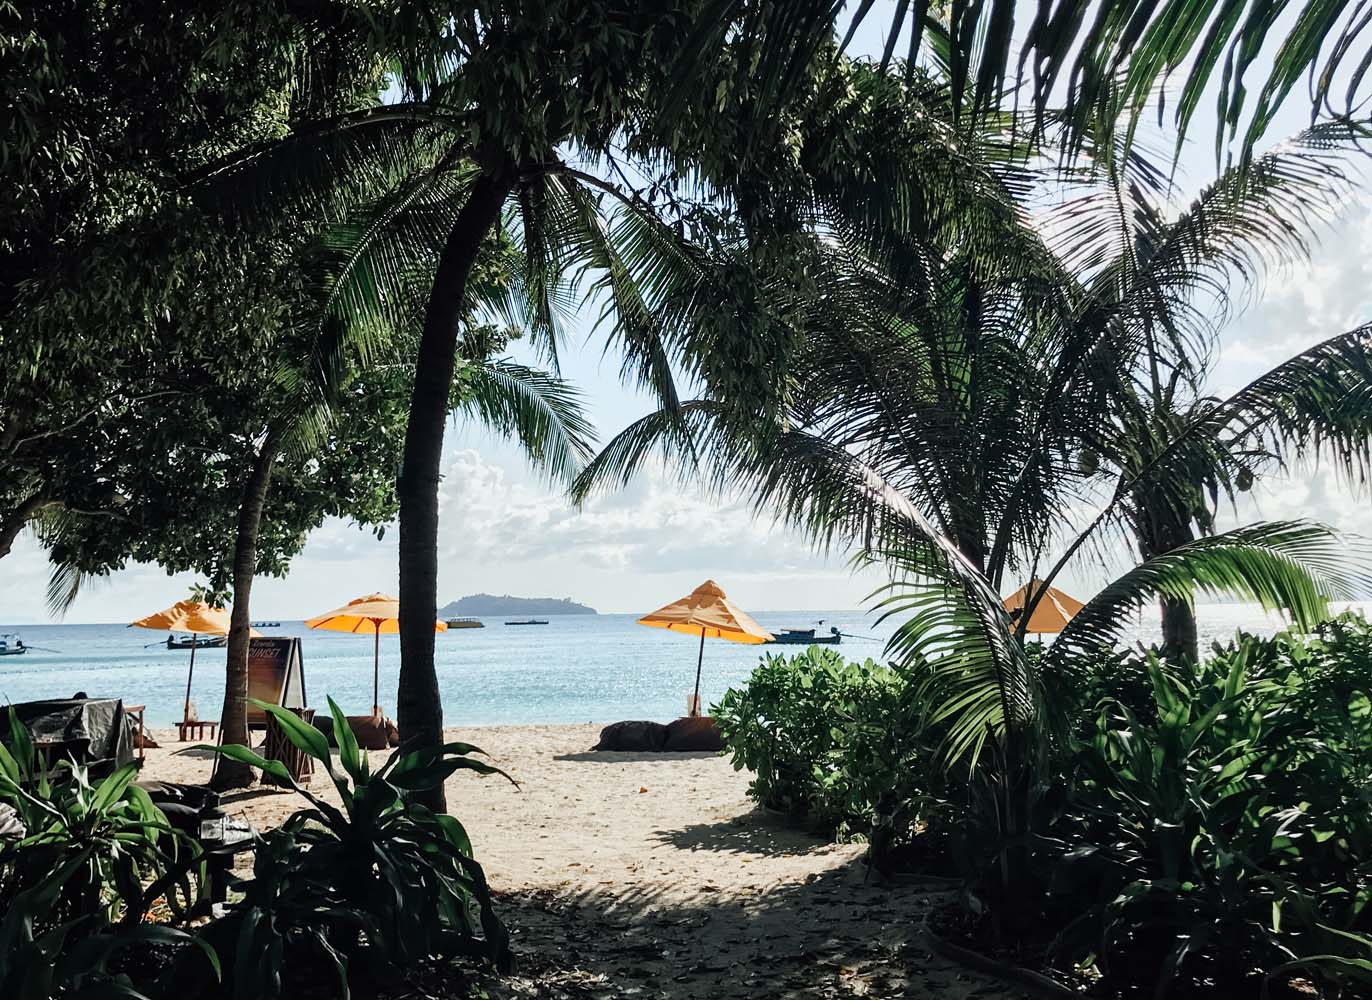 Eco-friendly travel in Thailand made easy: for green luxury head to Zeavola, a sustainable Koh Phi Phi Hotel for a guilt-free and budget-friendly holiday.